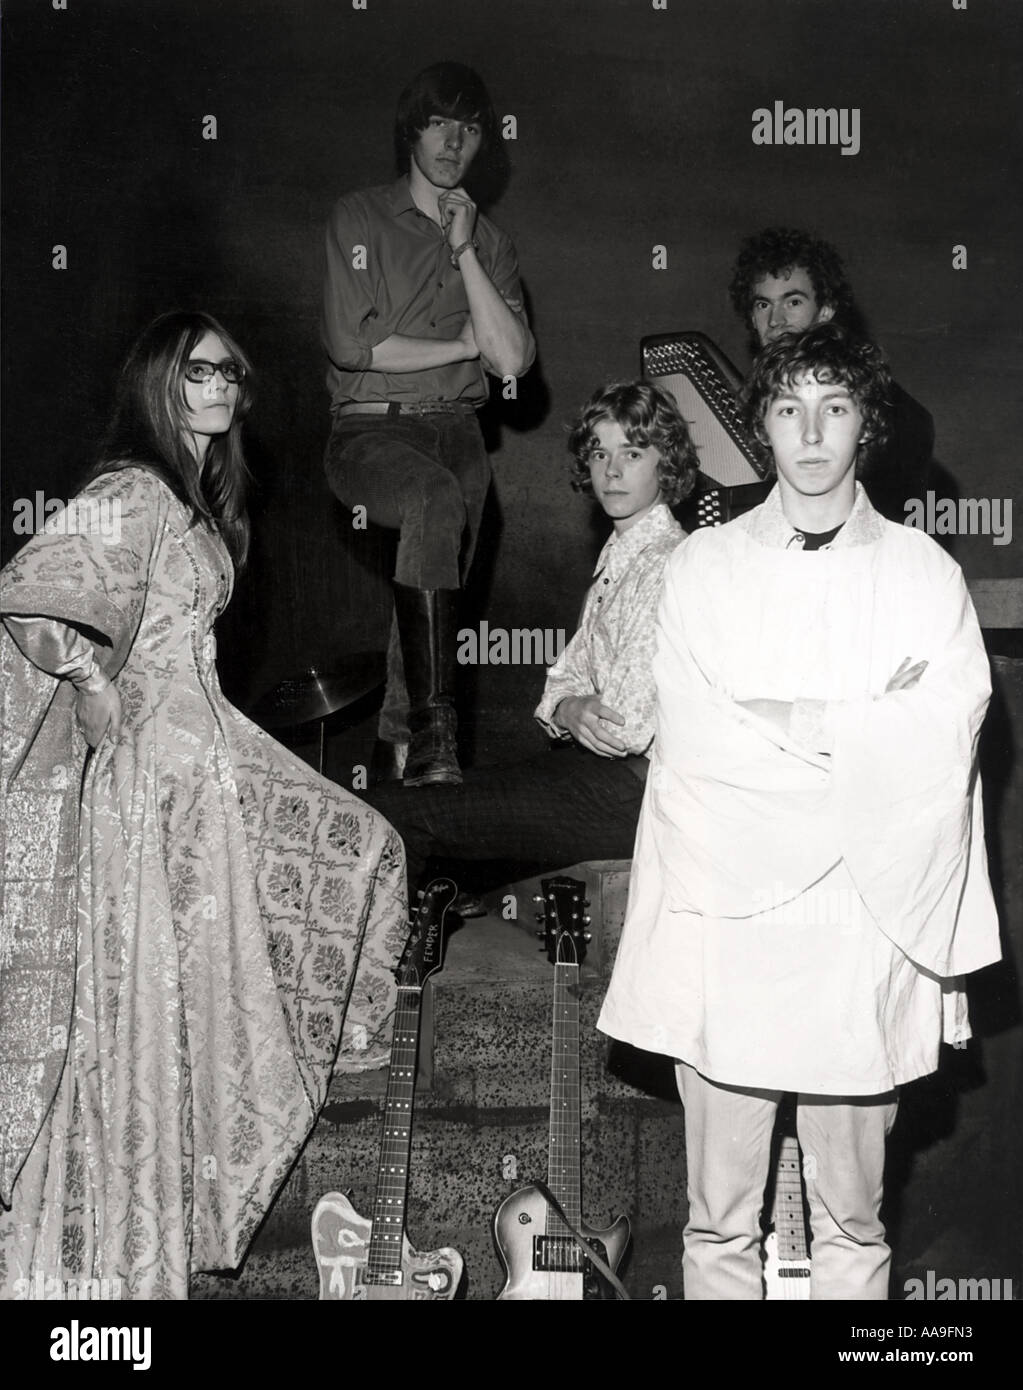 FAIRPORT CONVENTION UK group in 1967 From left Judy Dyble, Simon Nicol, Martin Lamble, Ashley Hitchings at back and Richard Thom - Stock Image